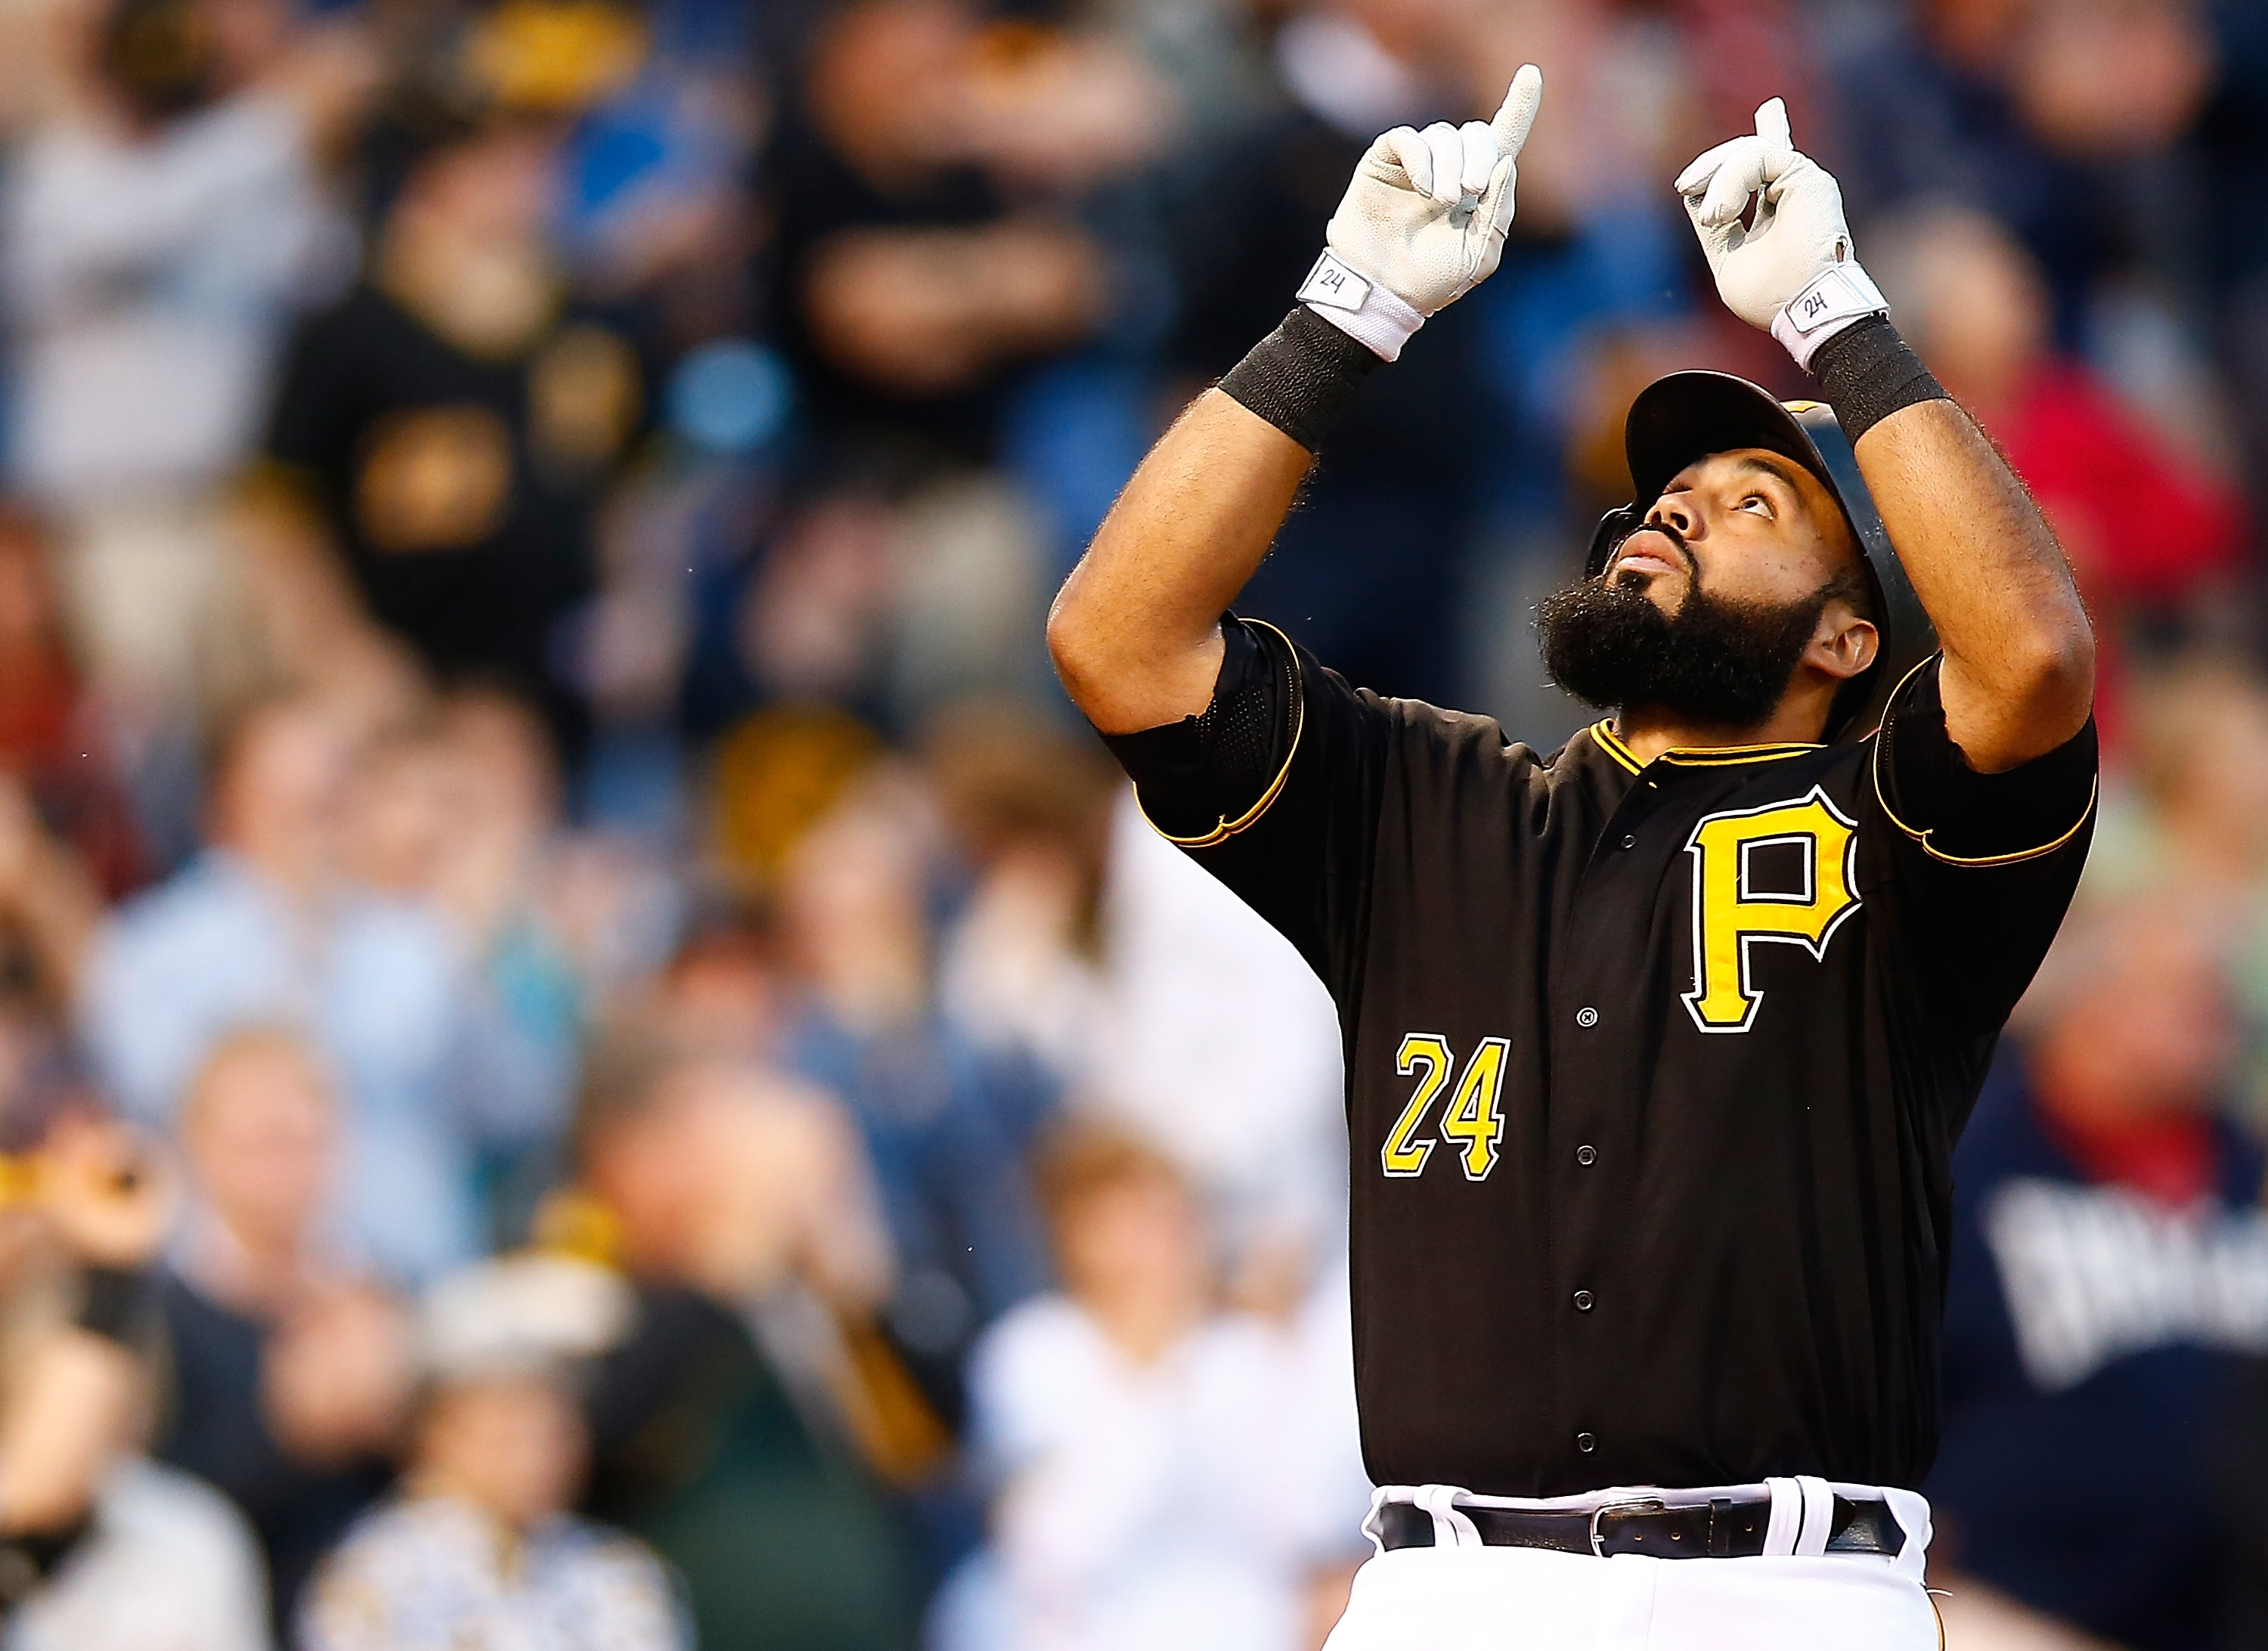 Pedro Alvarez Smashes a HR Into the Allegheny